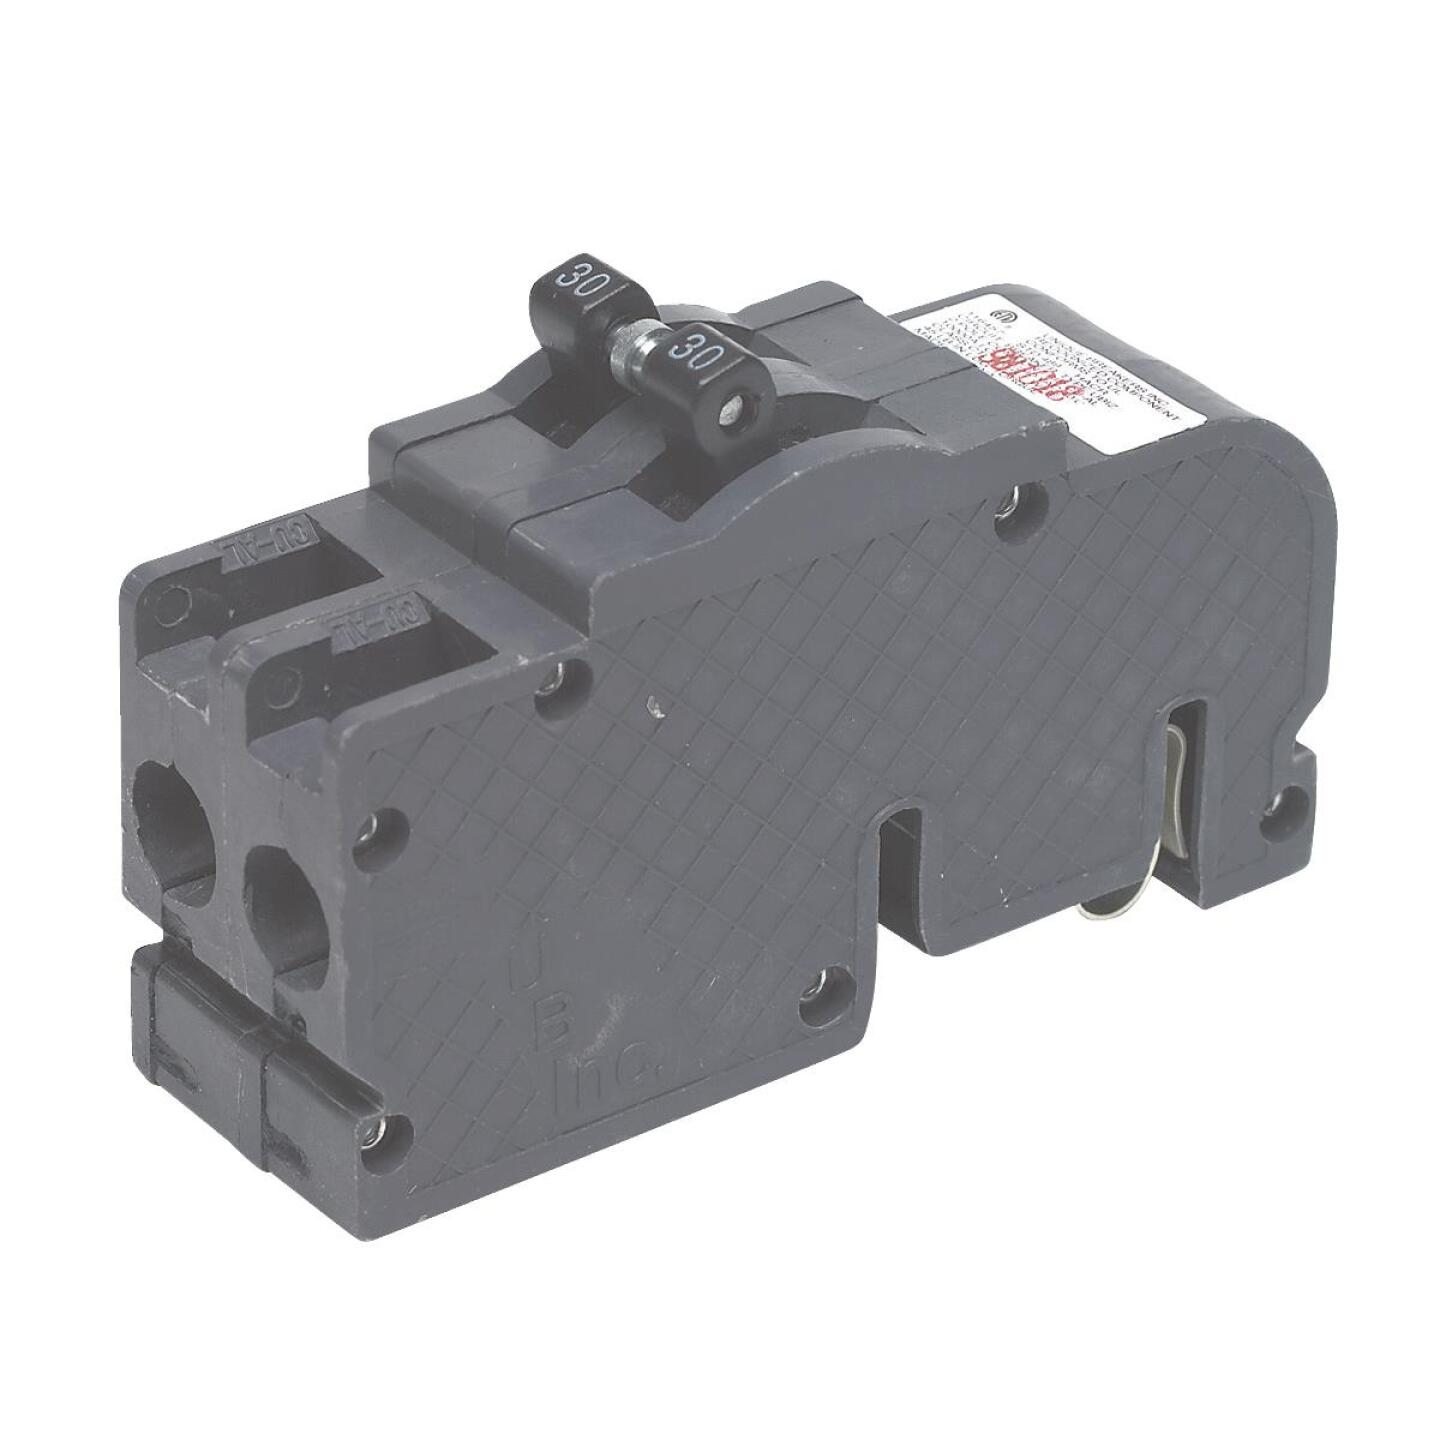 Connecticut Electric 20A Double-Pole Standard Trip Packaged Replacement Circuit Breaker For Zinsco Image 1